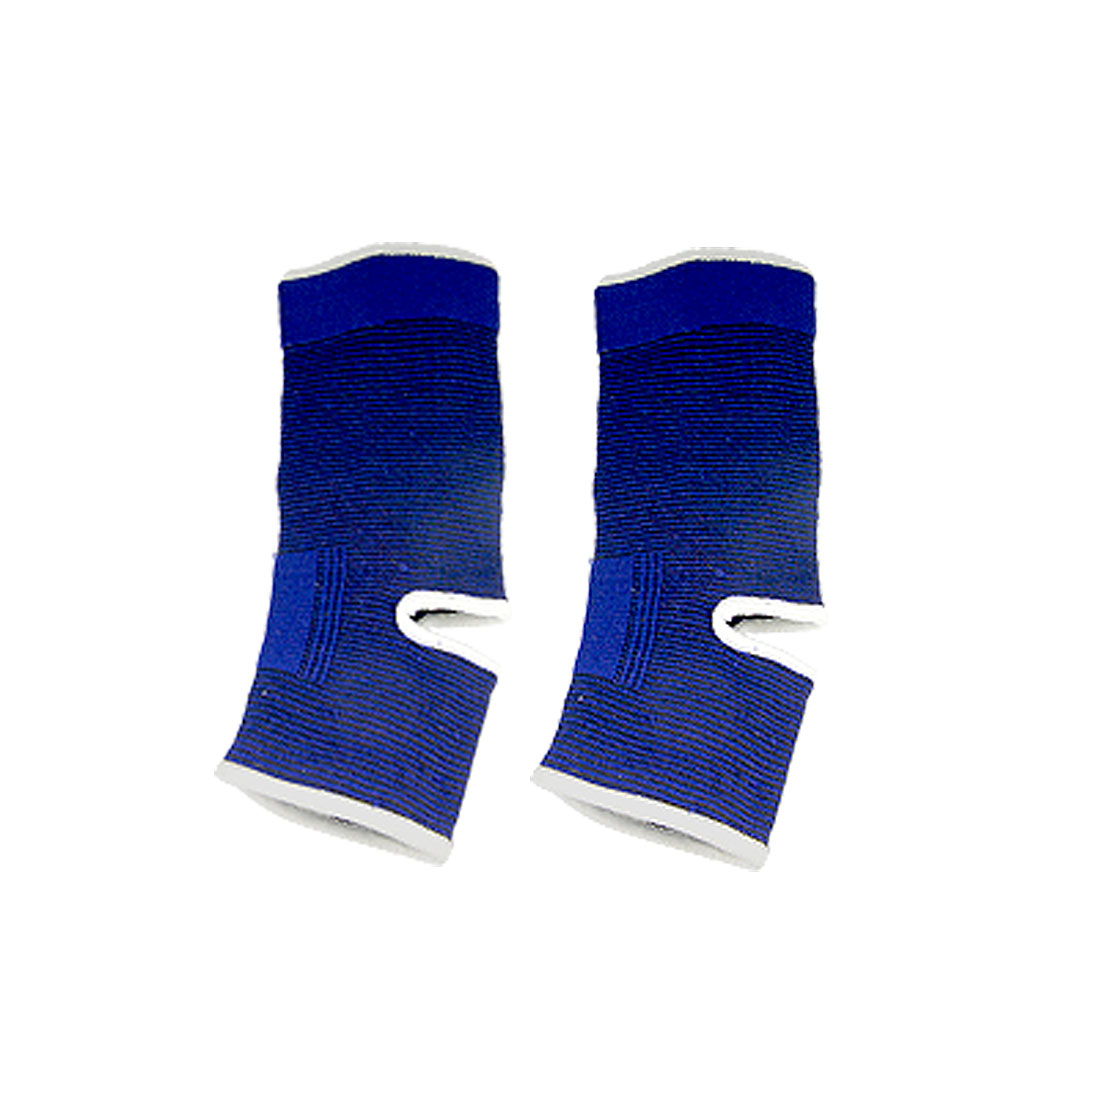 2 Pcs Blue Pinstrip Ankle Elastic Sleeve Support Protector Brace